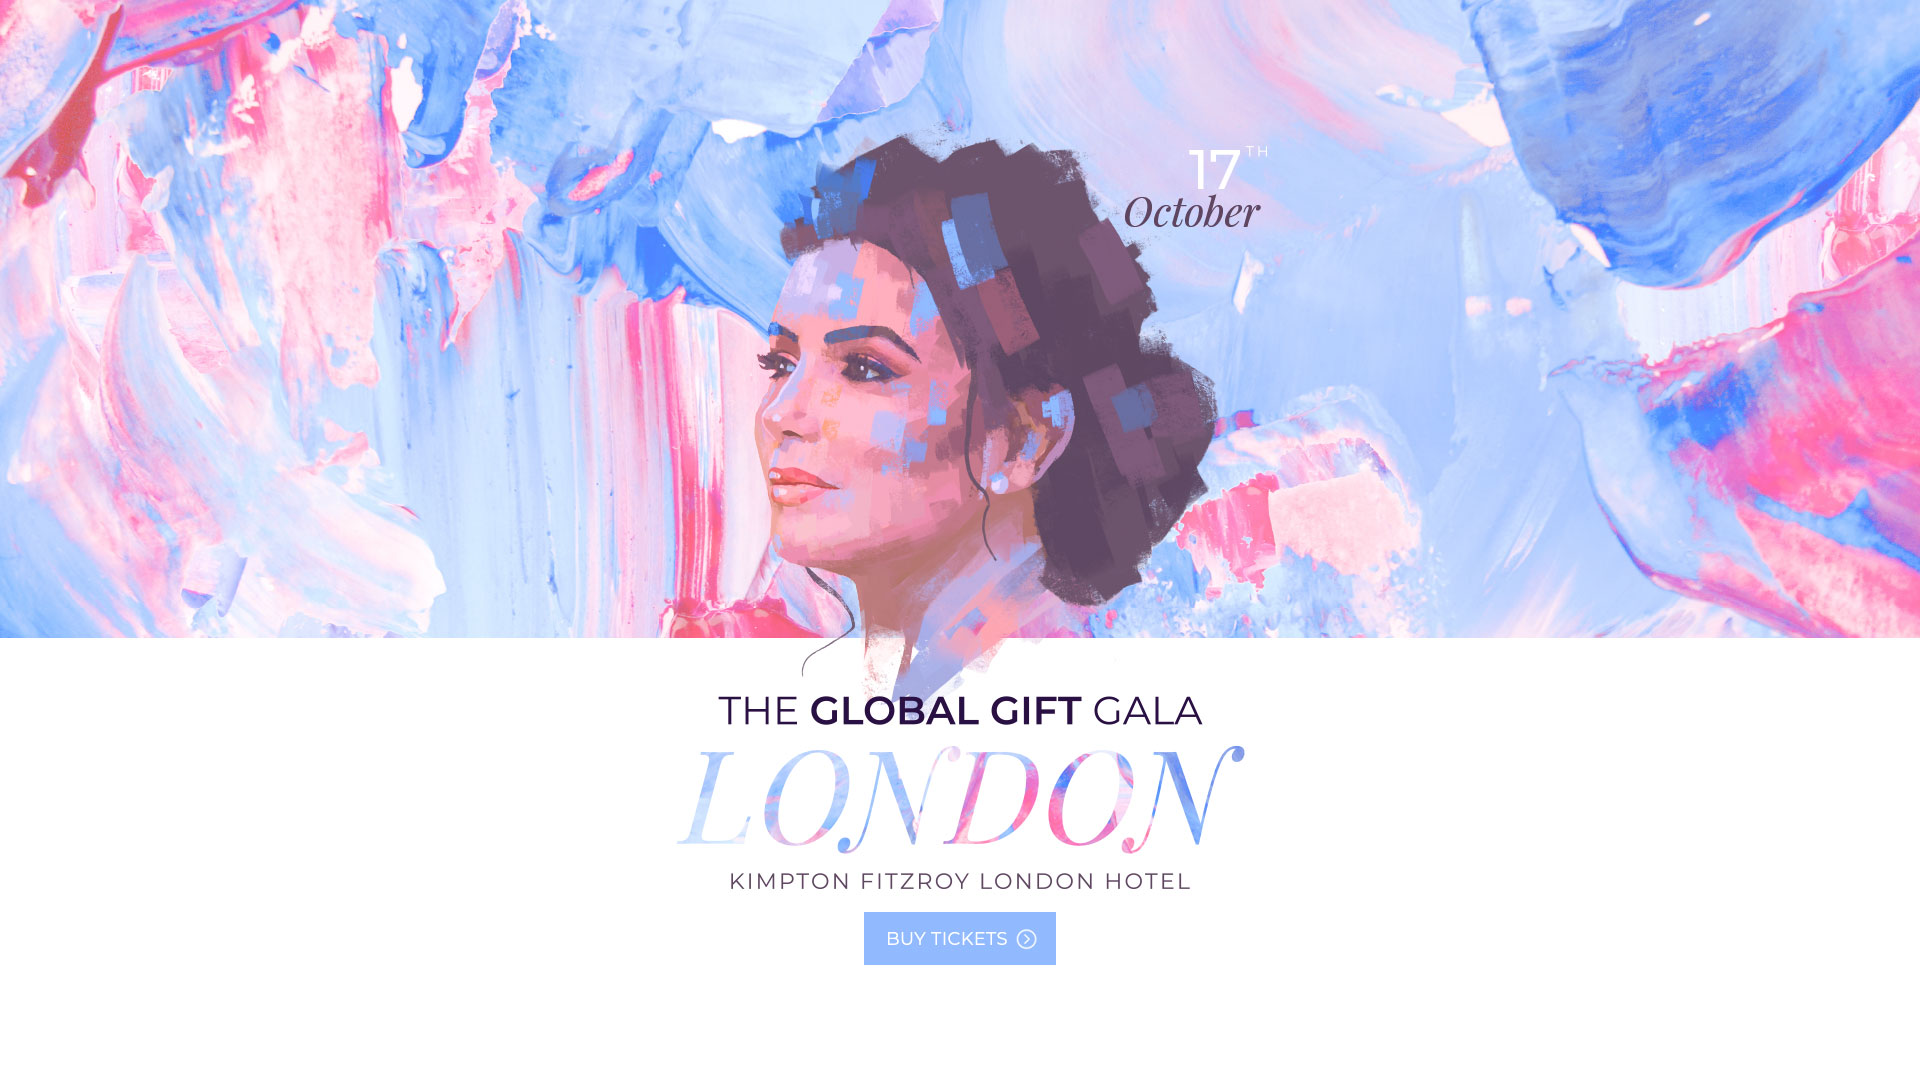 The Global Gift Gala London 2019